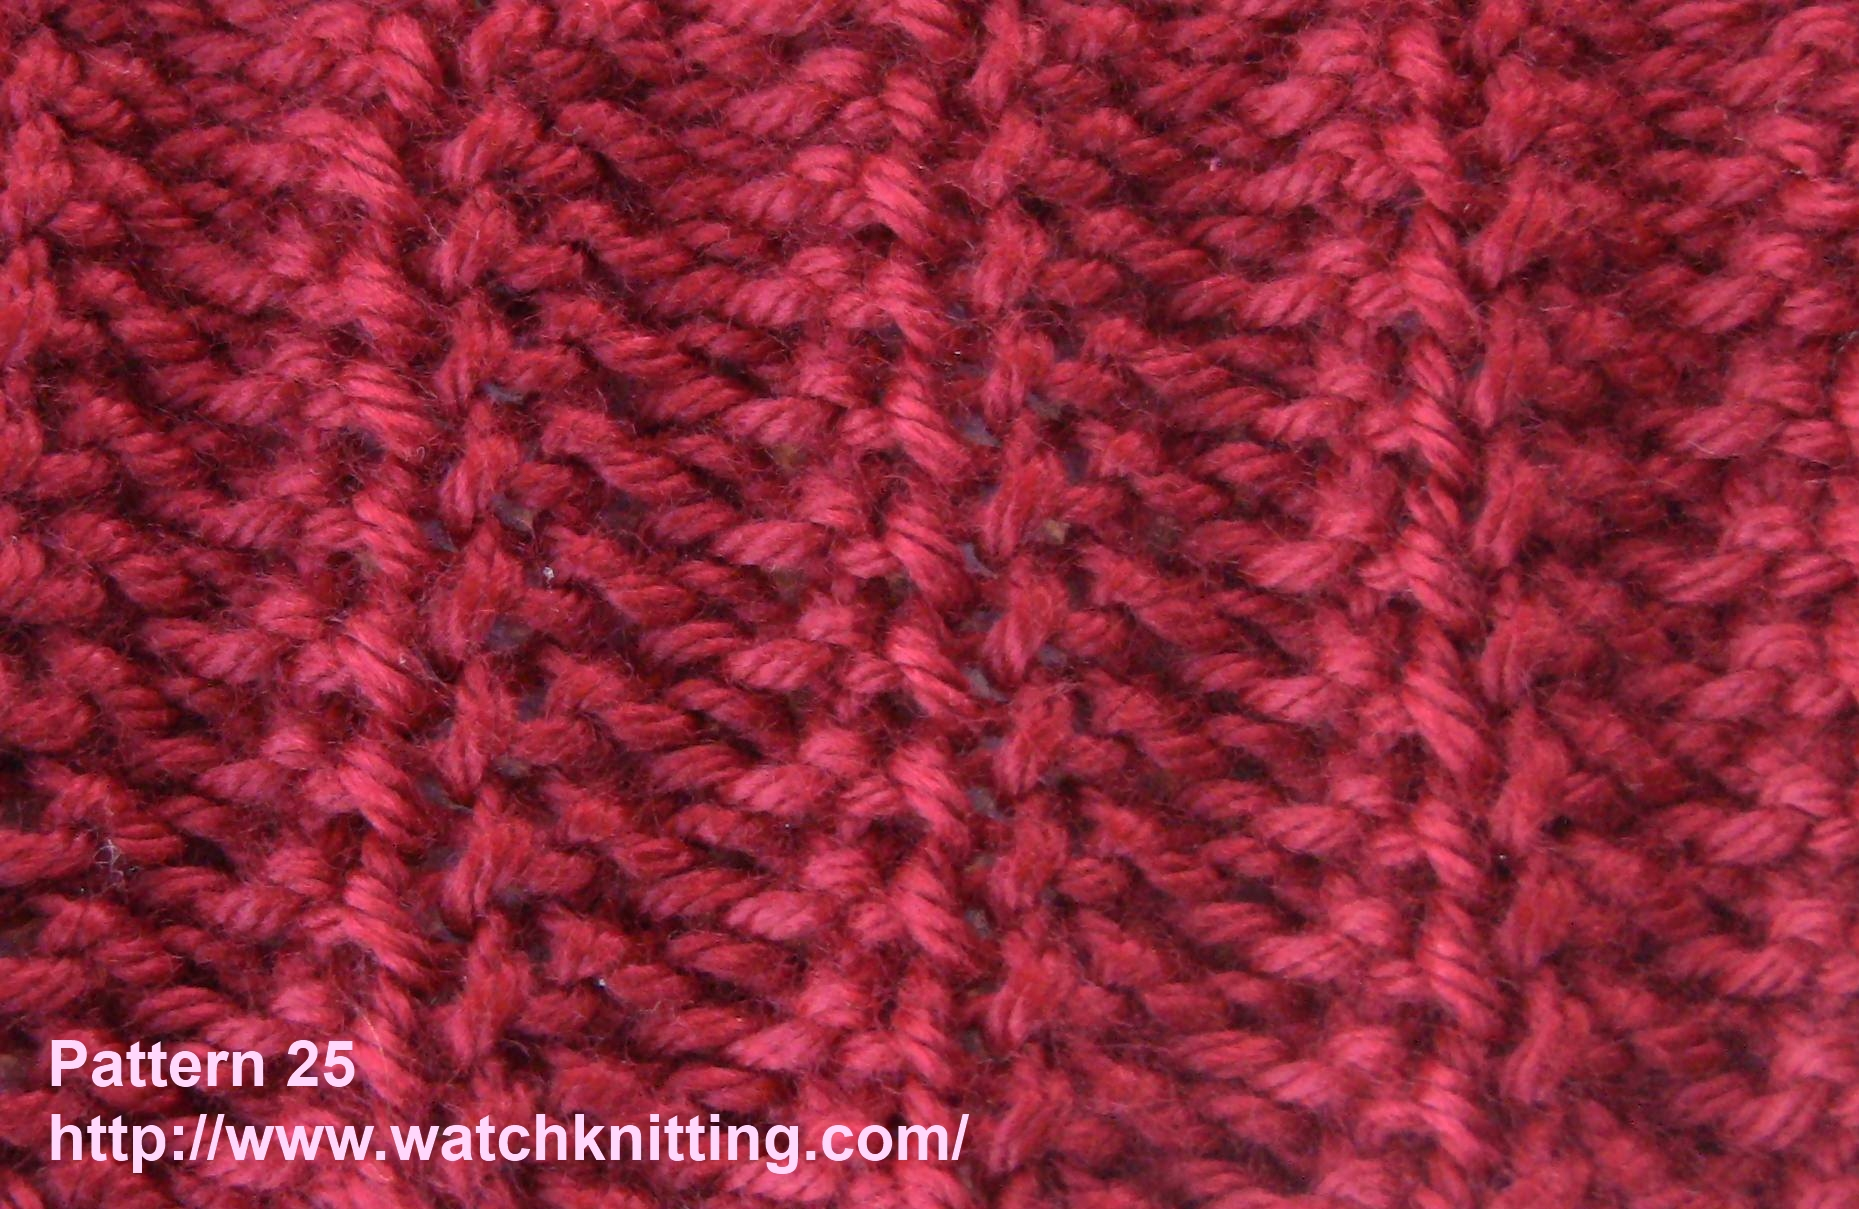 Knitting Crochet Patterns : Watch knitting